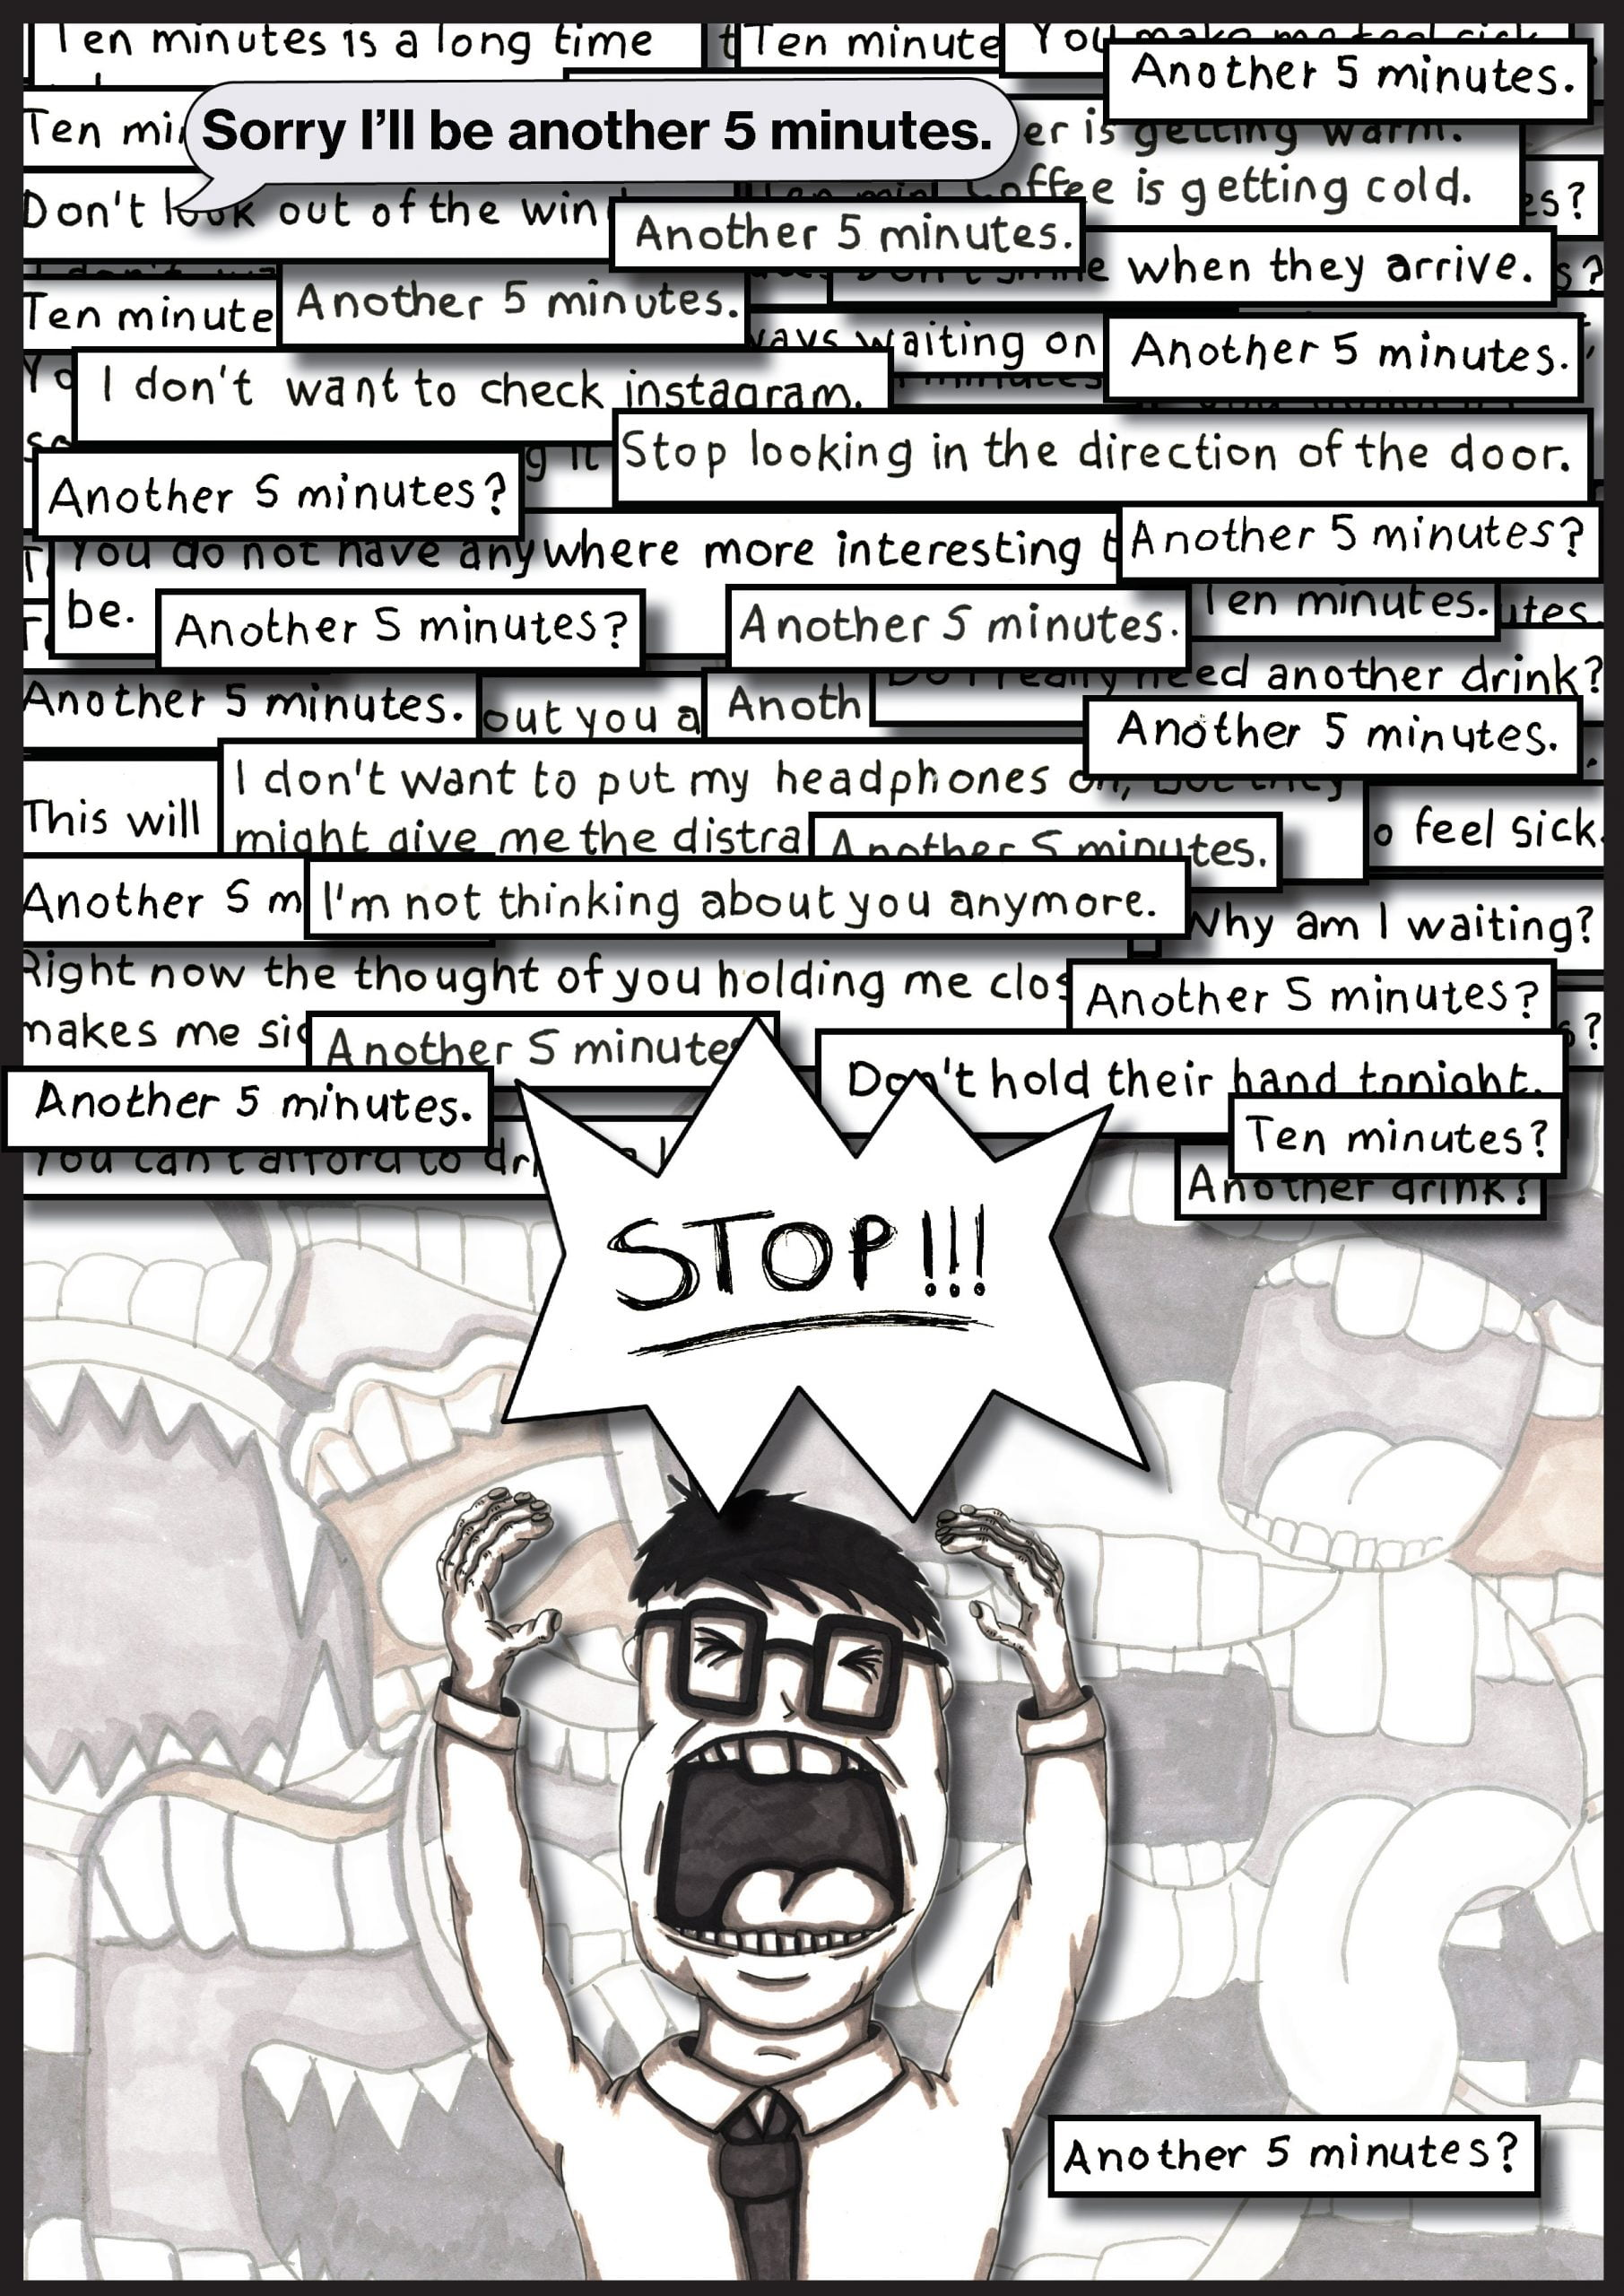 """A person smartly dressed with a tie, frustrated, with arms raised up above their head. Their eyes are clenched shut. Above their head is a speech bubble with the word """"STOP!!!"""" Above this in the upper half of the page are many boxes containing the text that contain phrases such as """"Another 5 minutes?"""" and """"I'm not thinking about you anymore"""". They are piled up and dense. In a fainter outline in the background are many open mouths appearing to speak."""